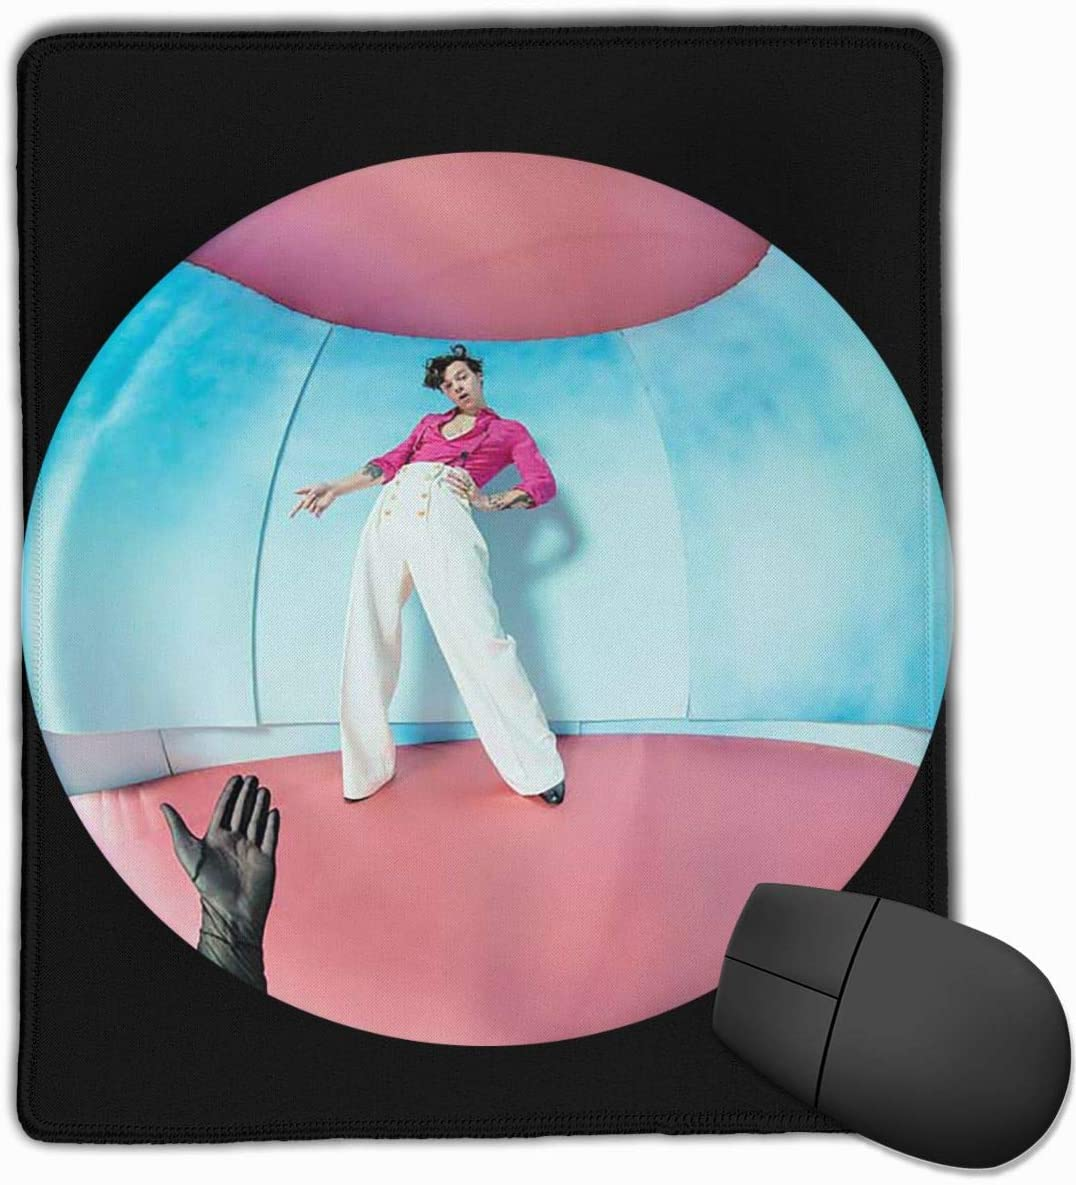 Overlocking Thickening Design Comfortable Feel Mouse Pad 11.8 in /× 9.8 in